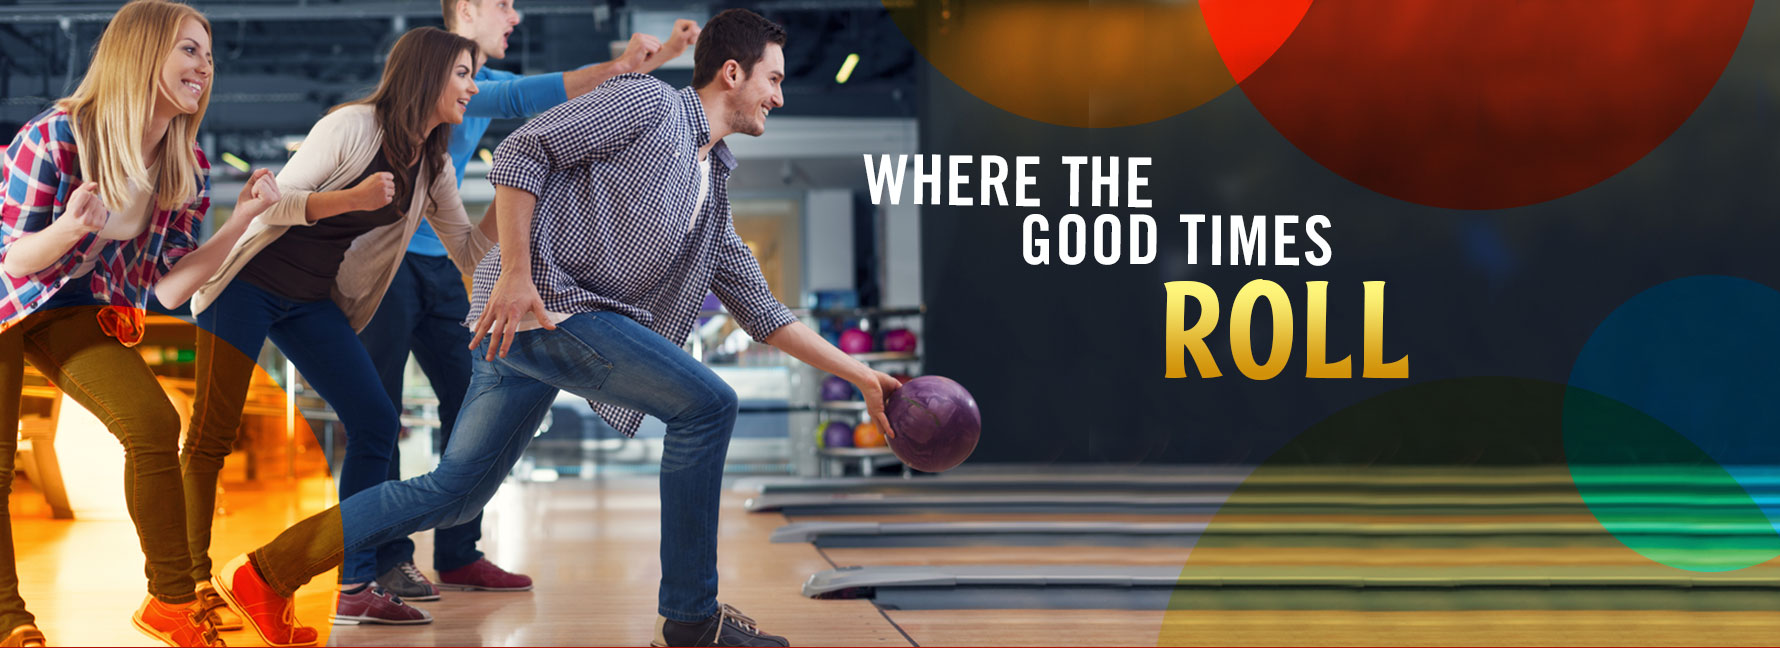 Where the Good Times Roll, People bowling